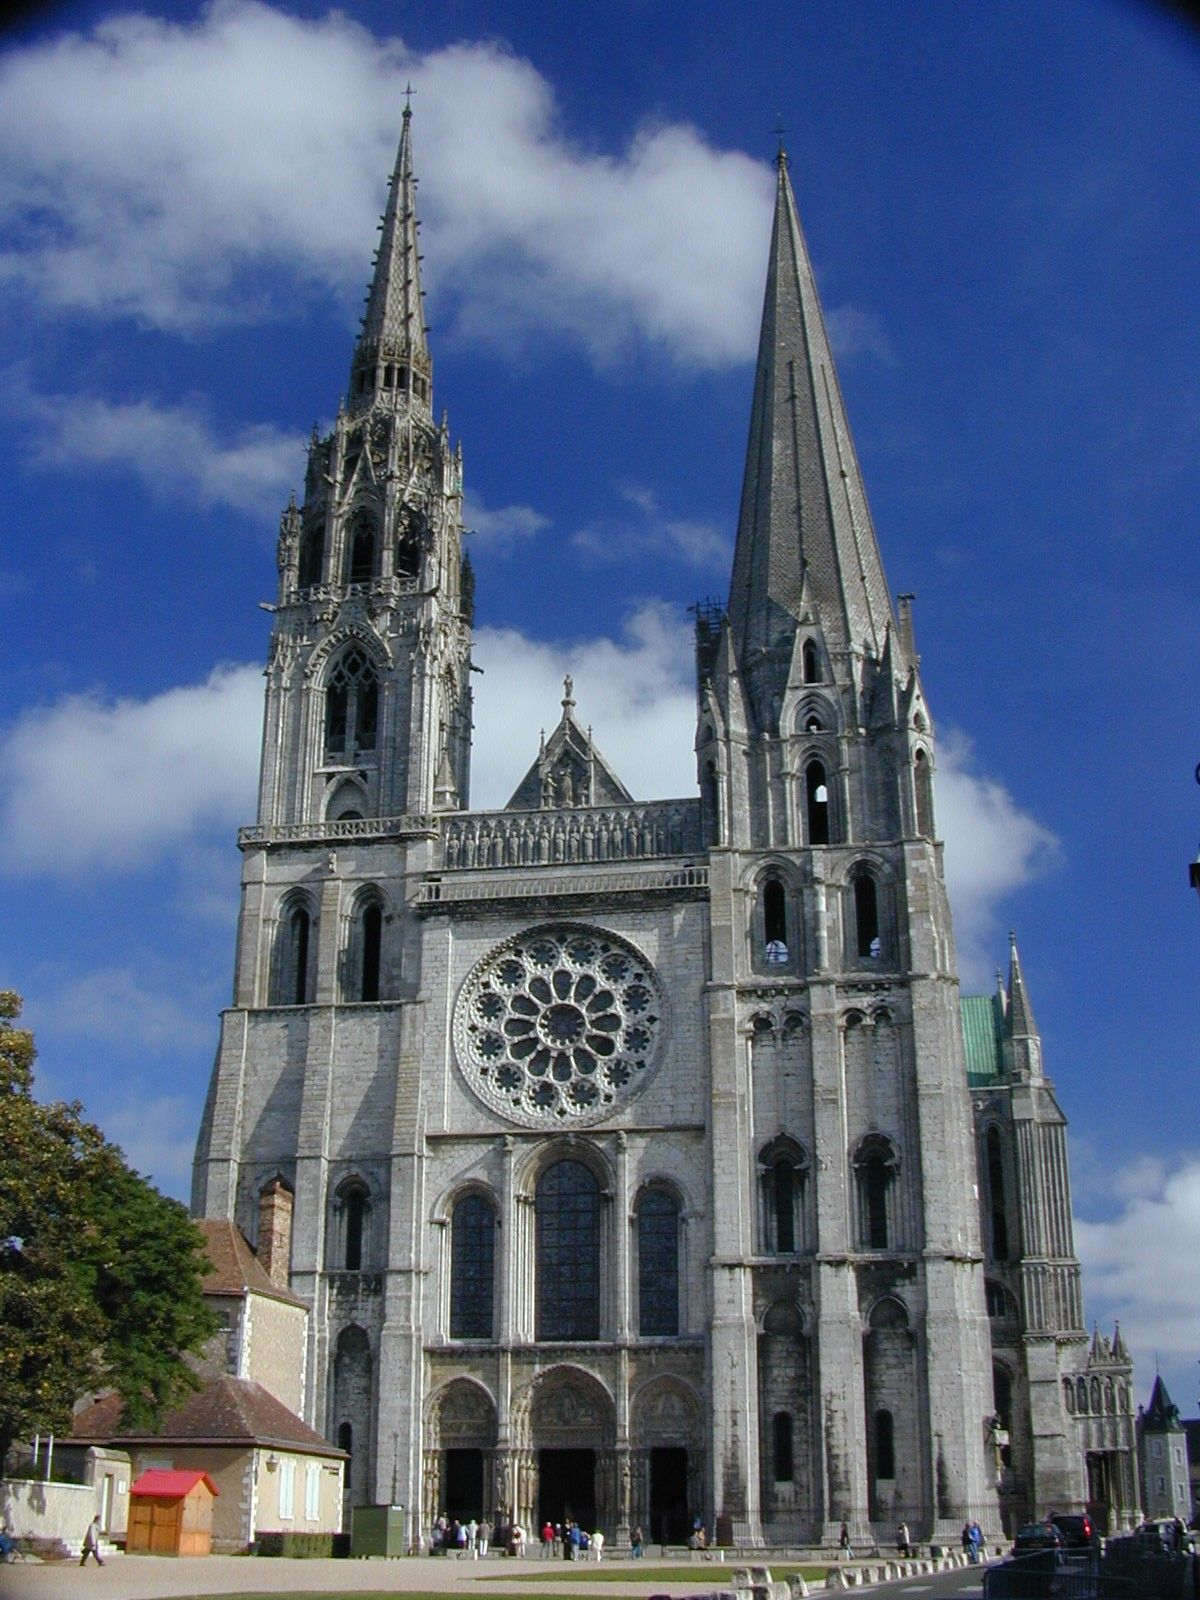 Blog Archive 100 Amazing Buildings Every Architecture Buff Should See Sakrale Architektur Gothische Architektur Romanische Architektur